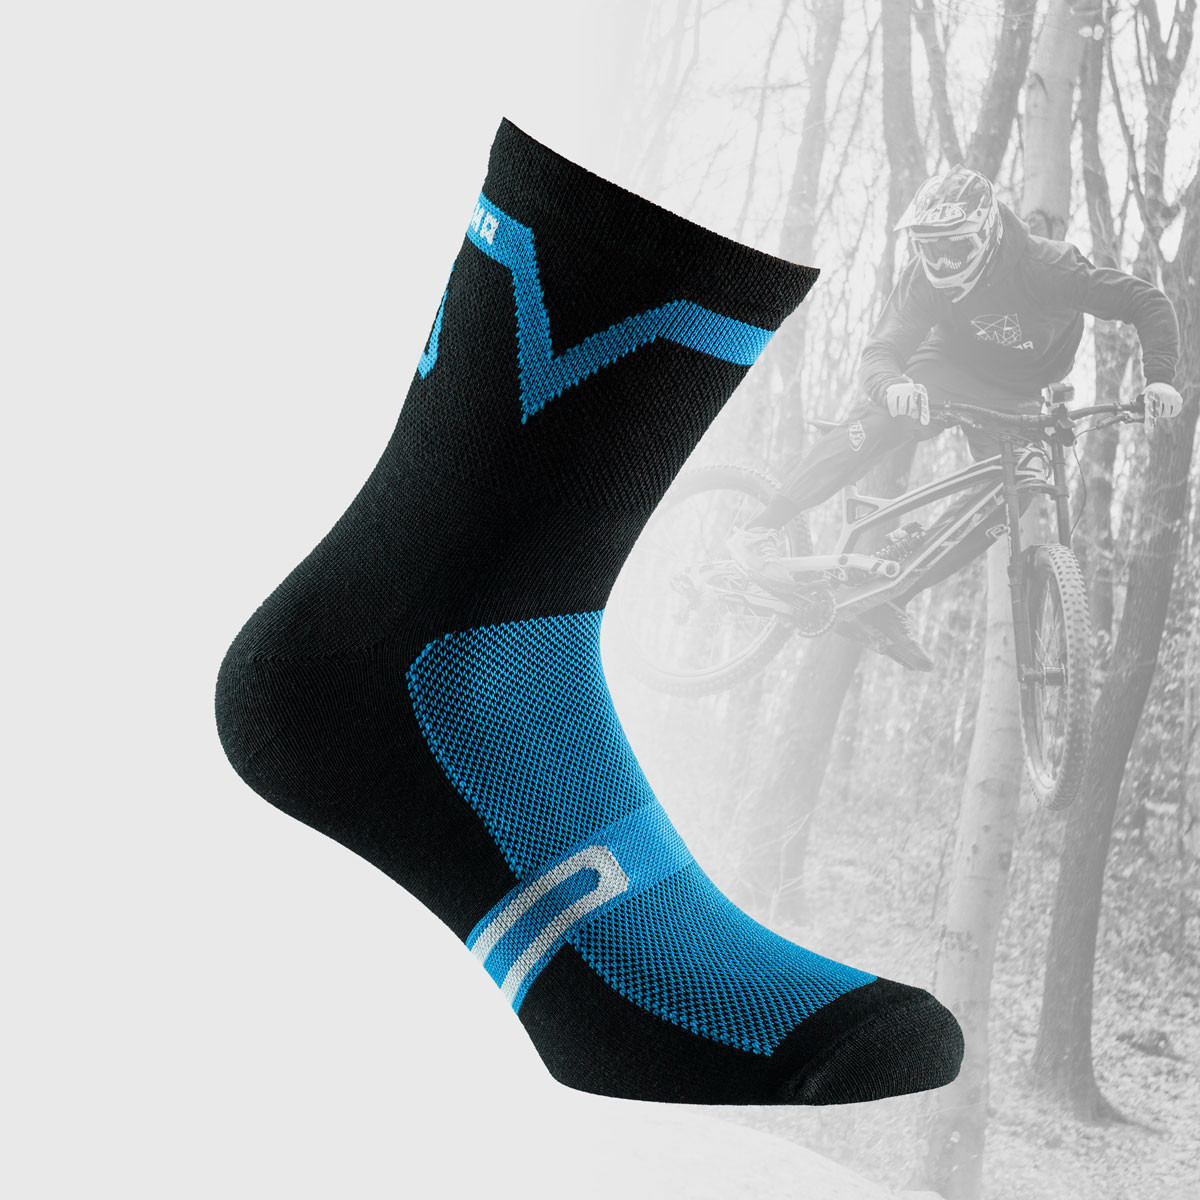 black cycling socks with blue details